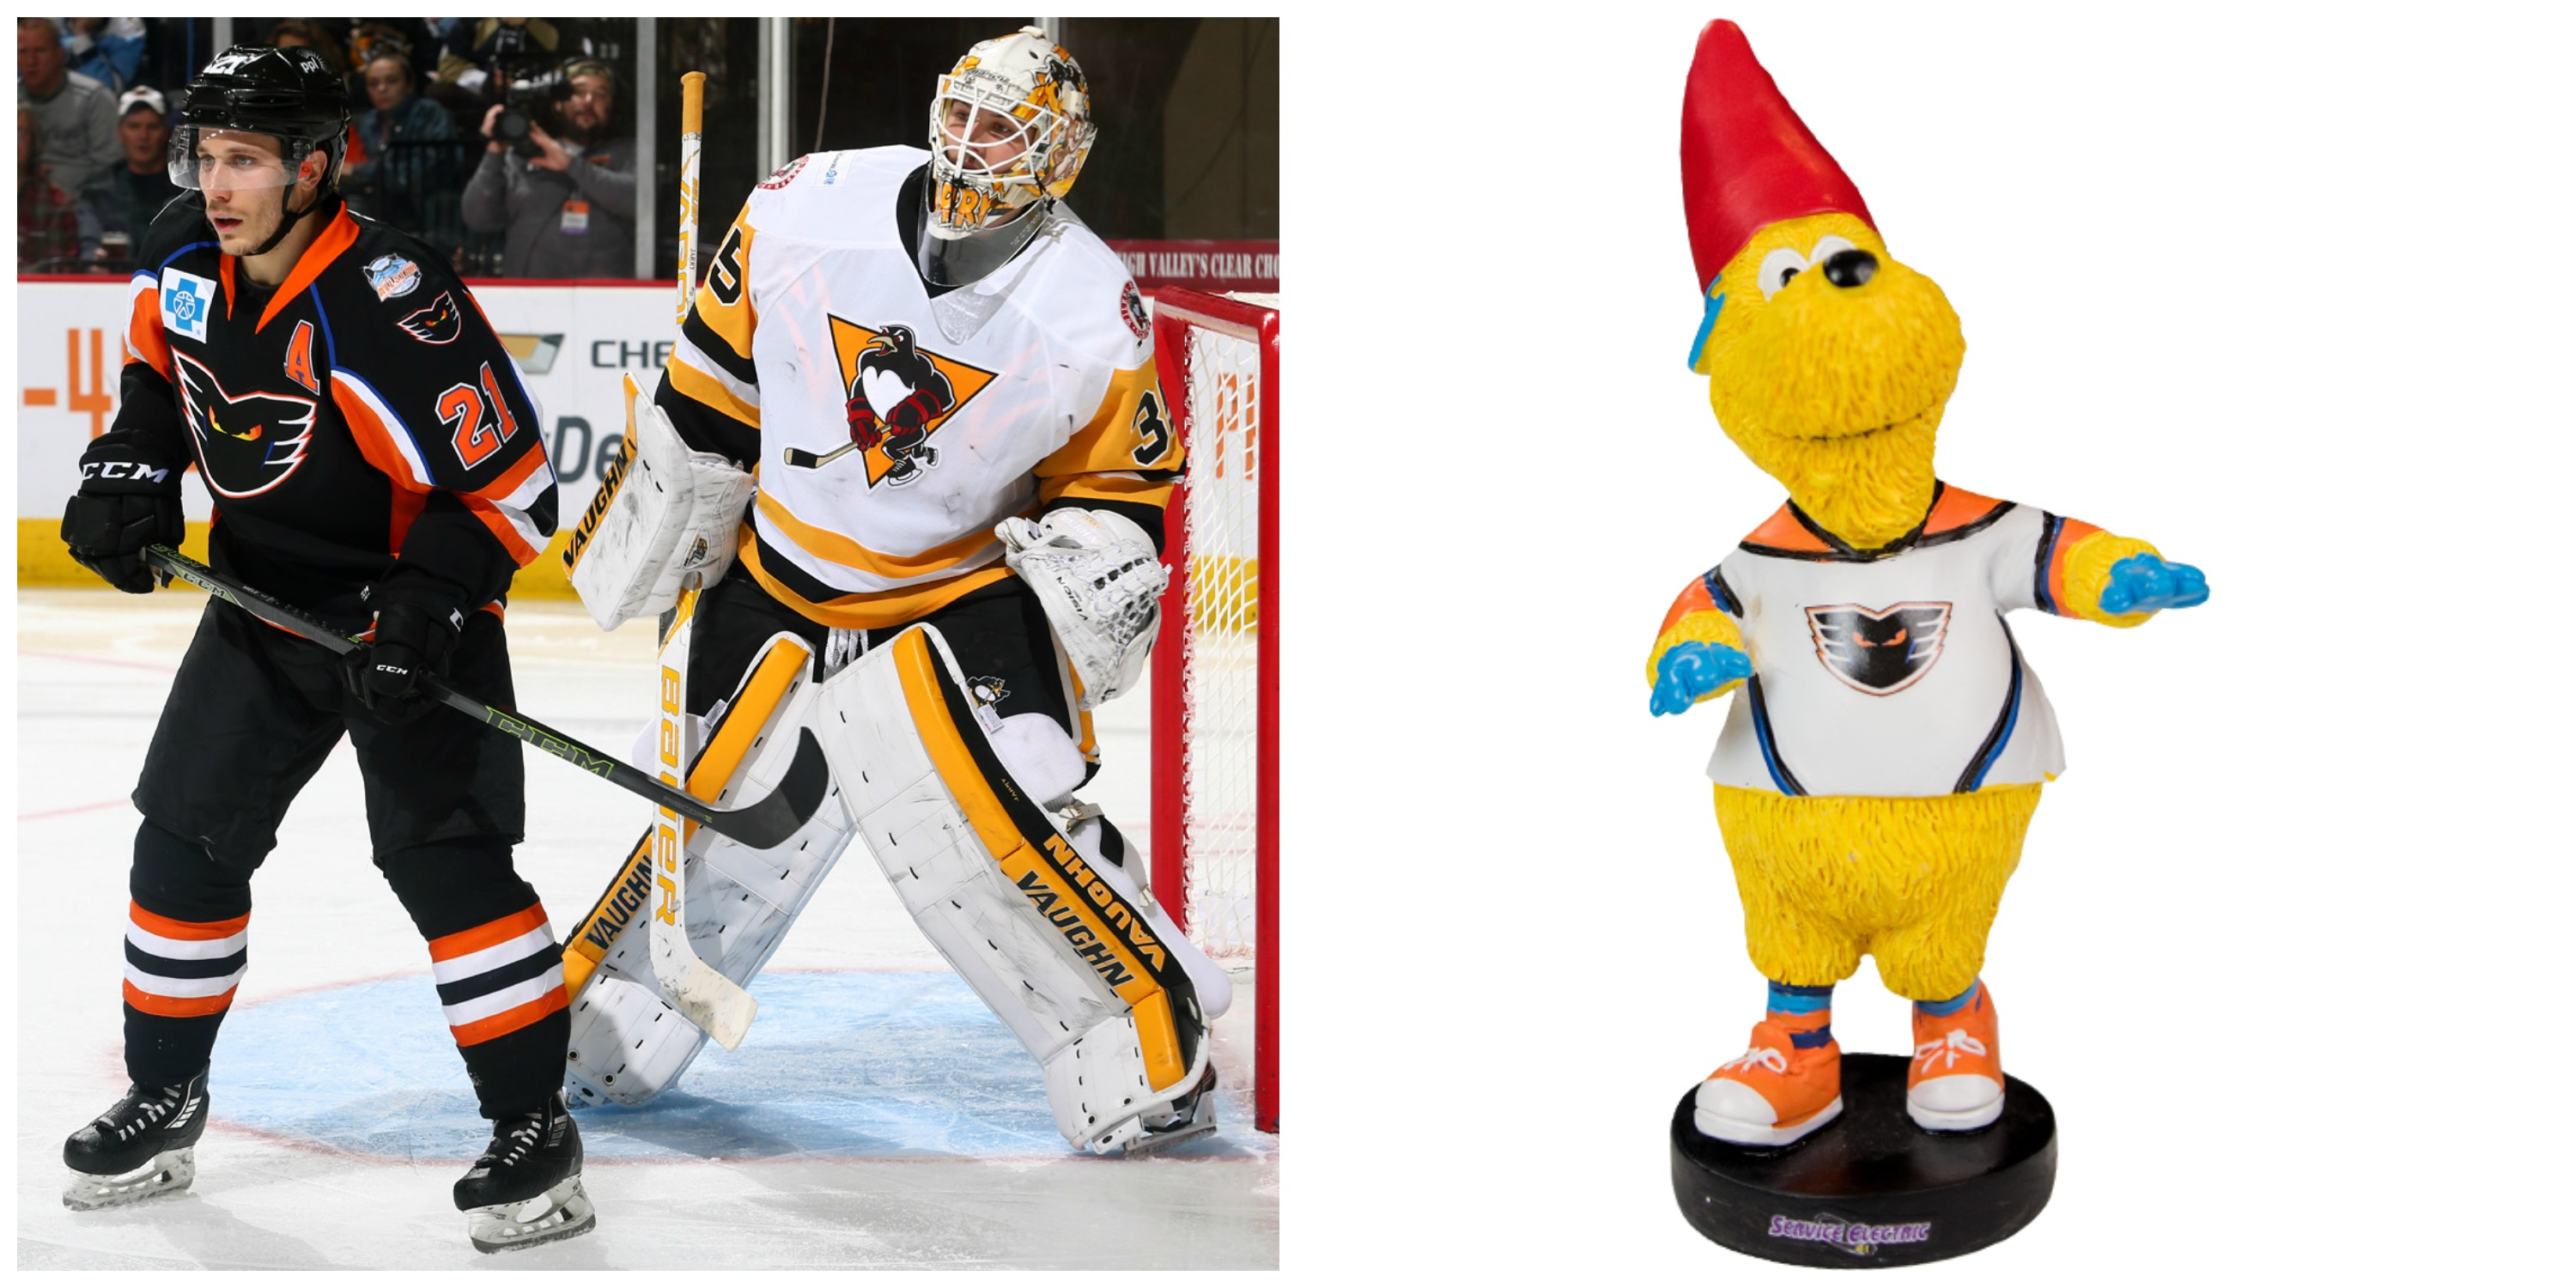 meLVin Garden Gnome Giveaway - Saturday, March 25, 7:05 p.m. @ PPL Center